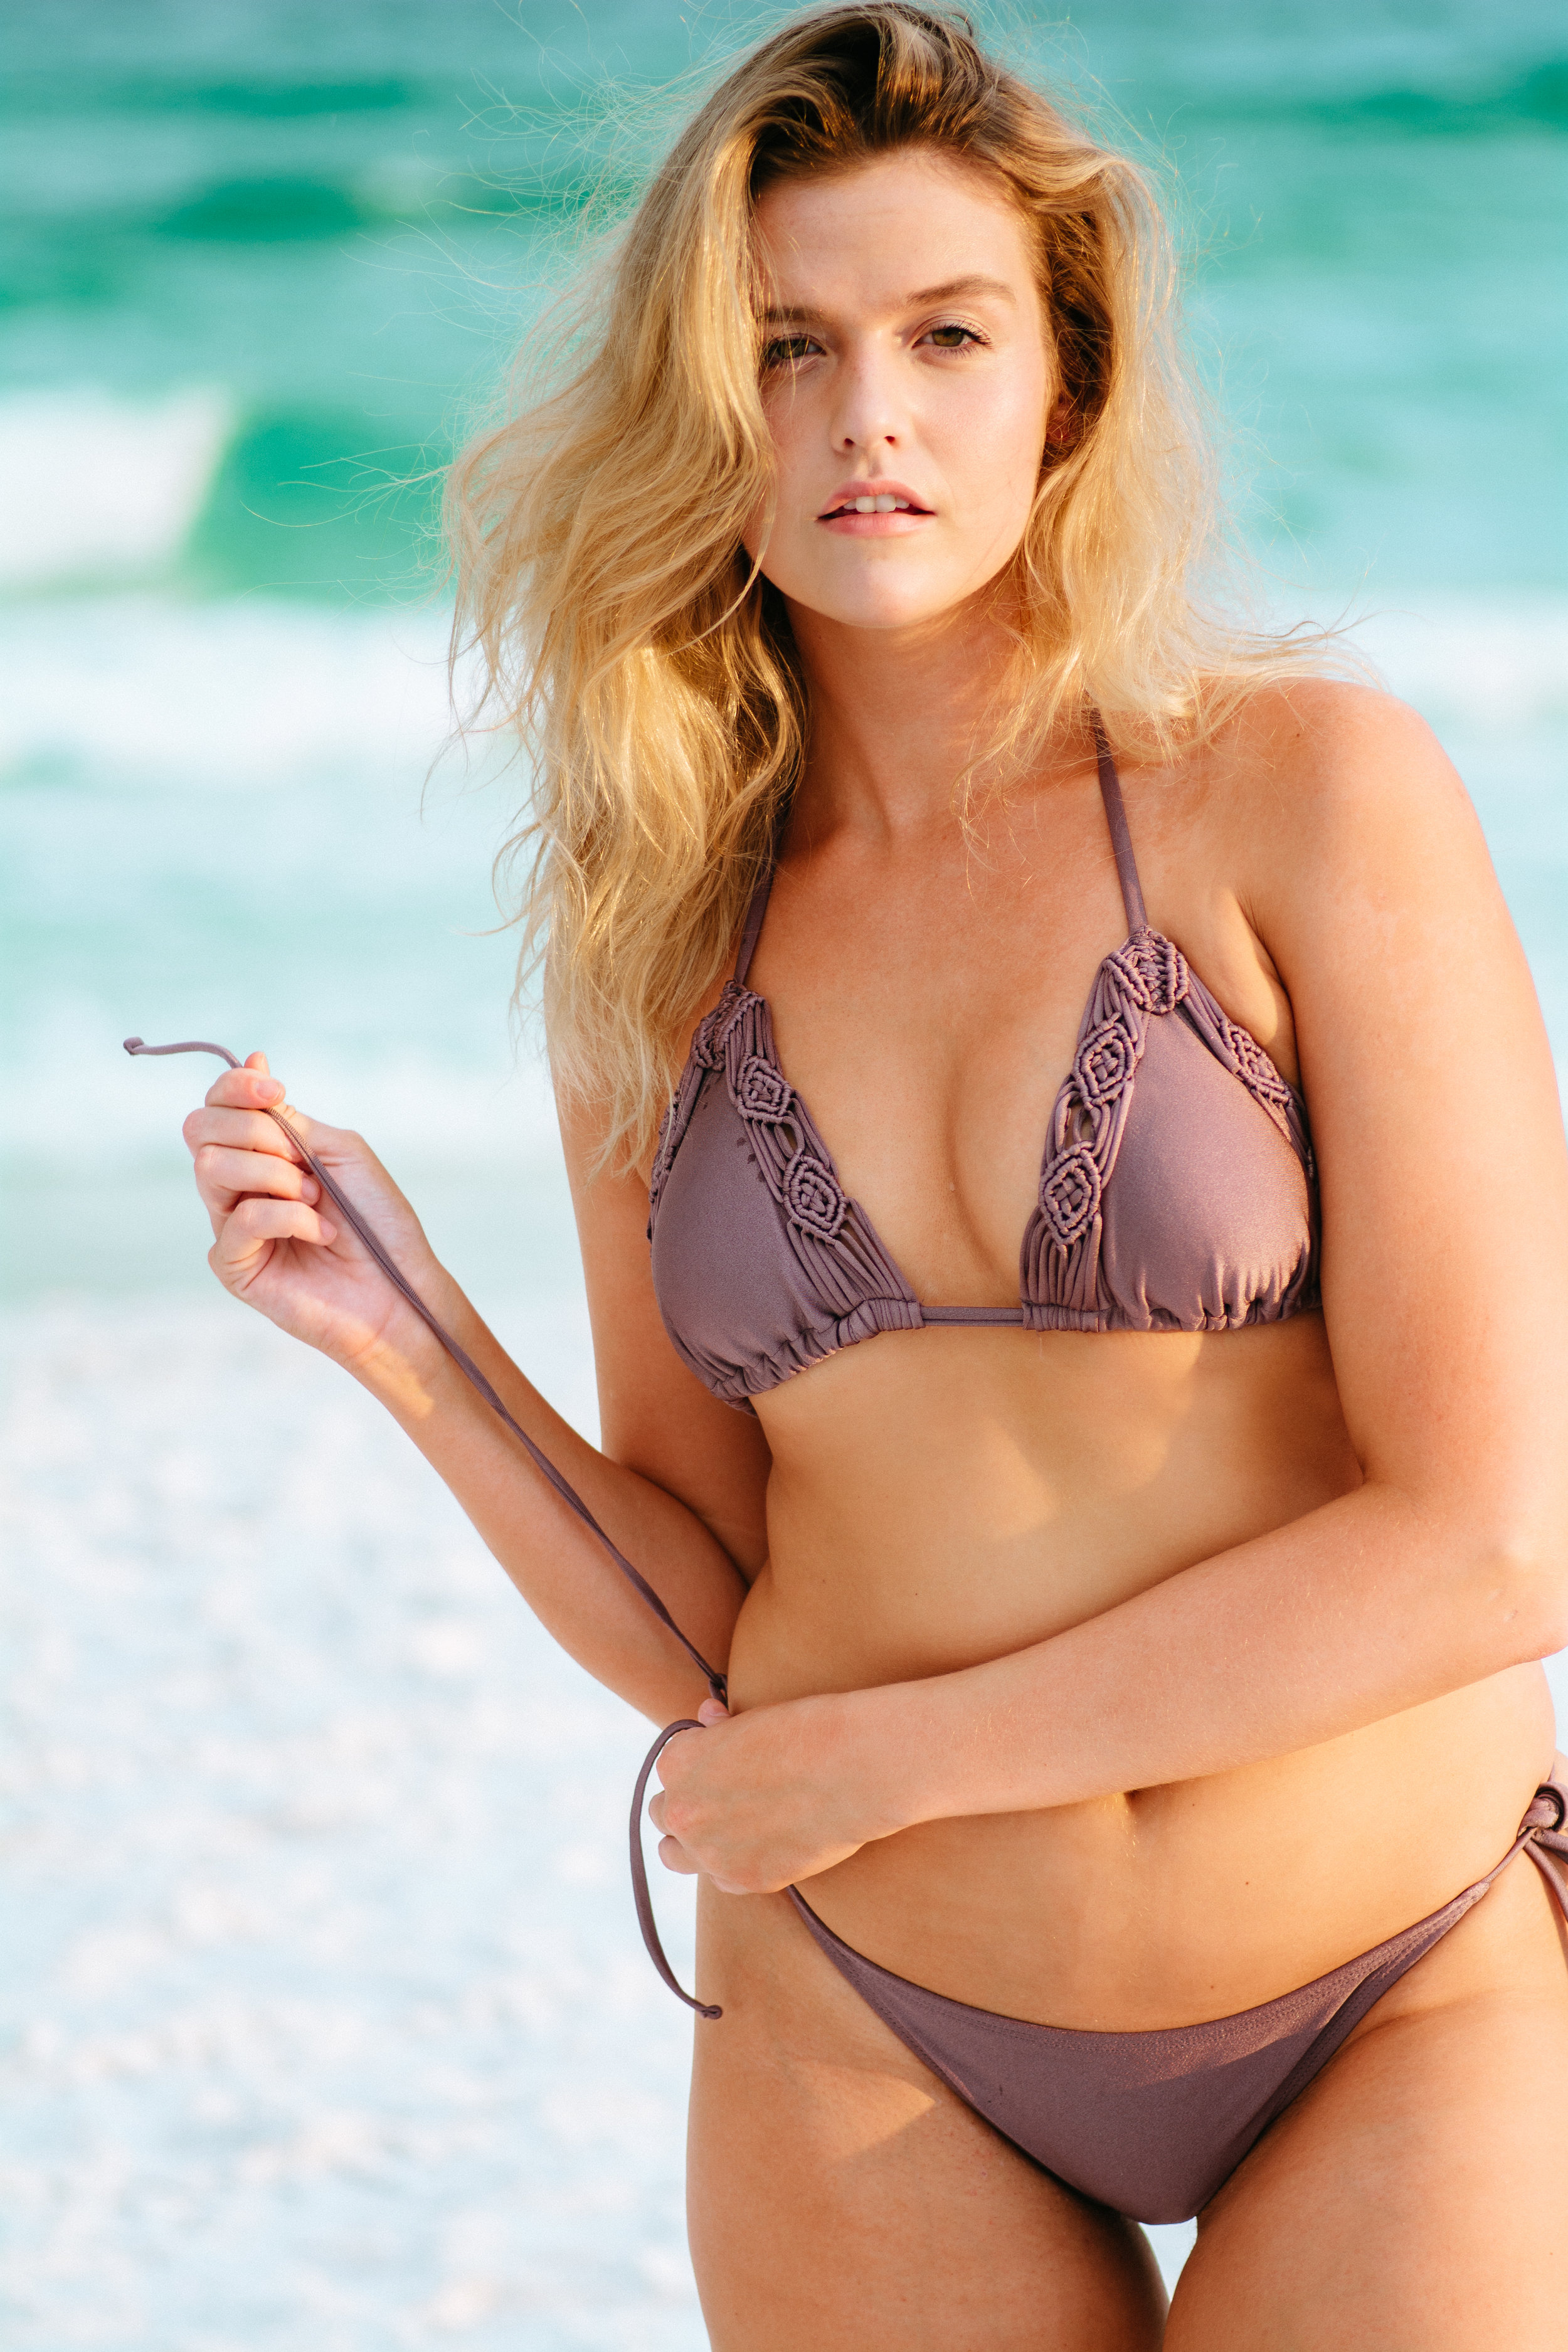 Dylan-Carney-Photography-Fashion-Lifestyle-Photography-Destin-Swim-Beach-Elizabeth-Braley-1.jpg